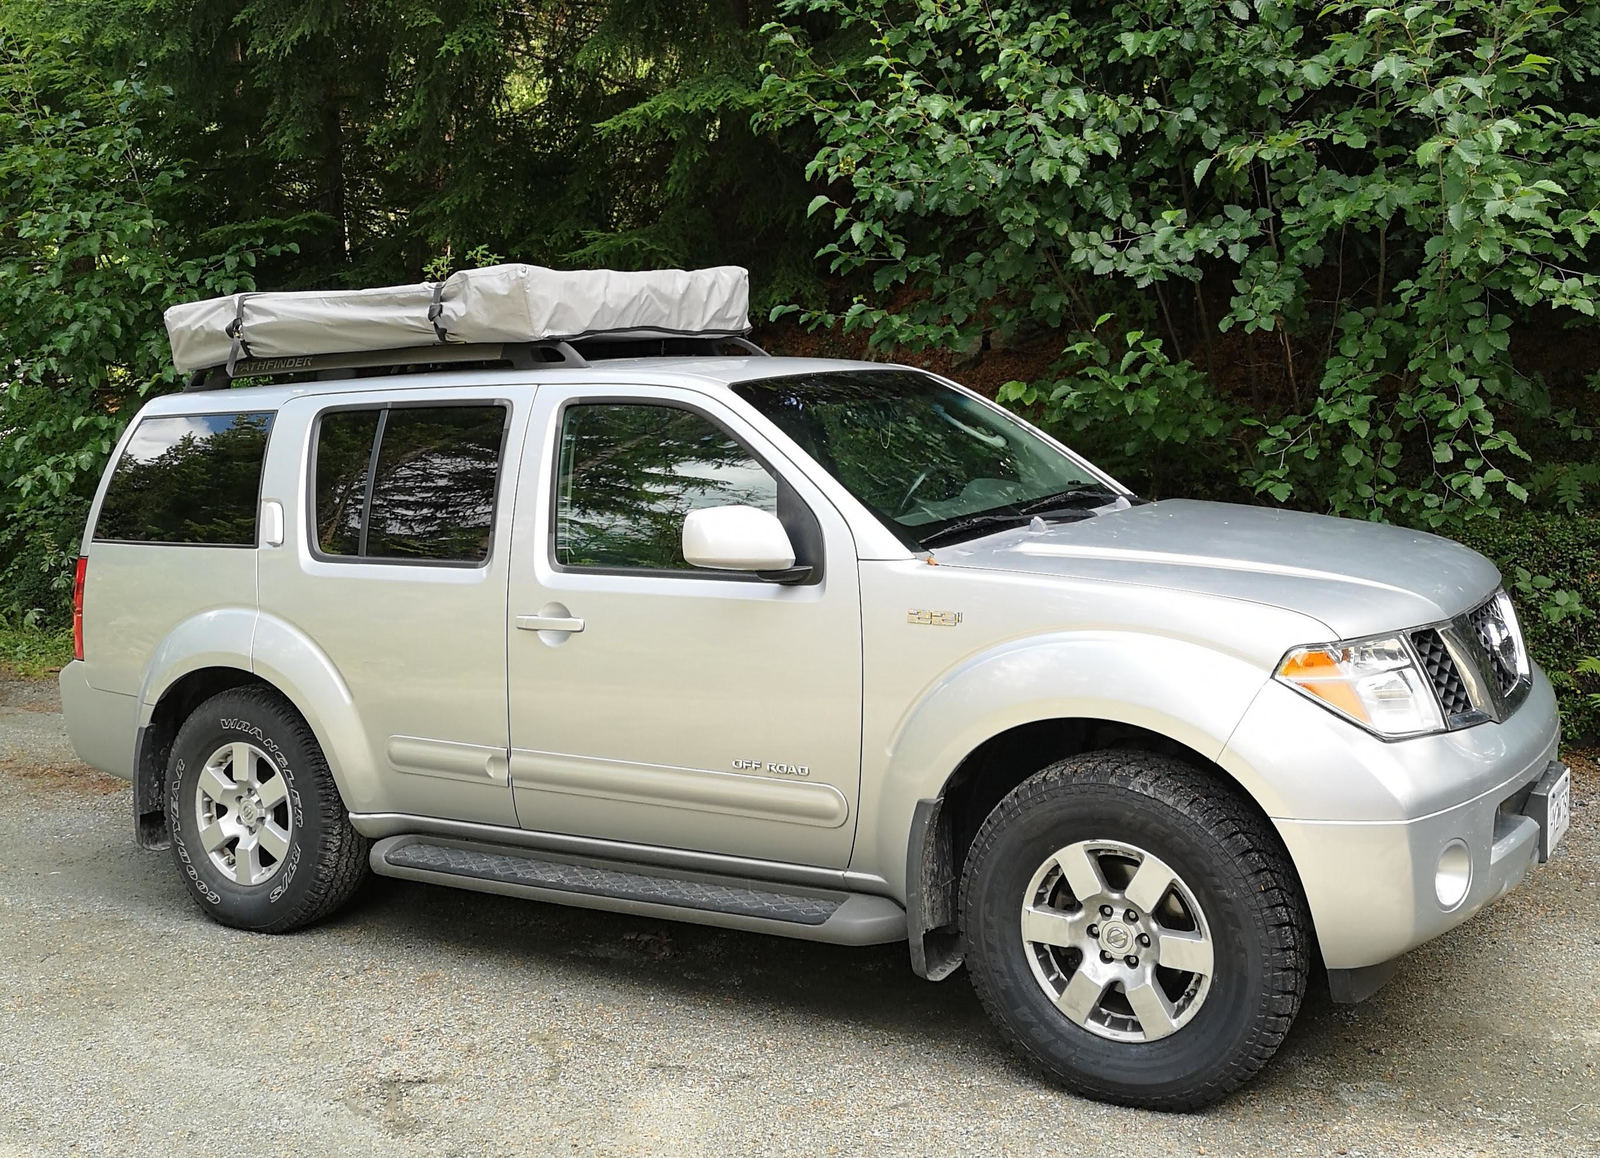 SUV with Rooftop Tent